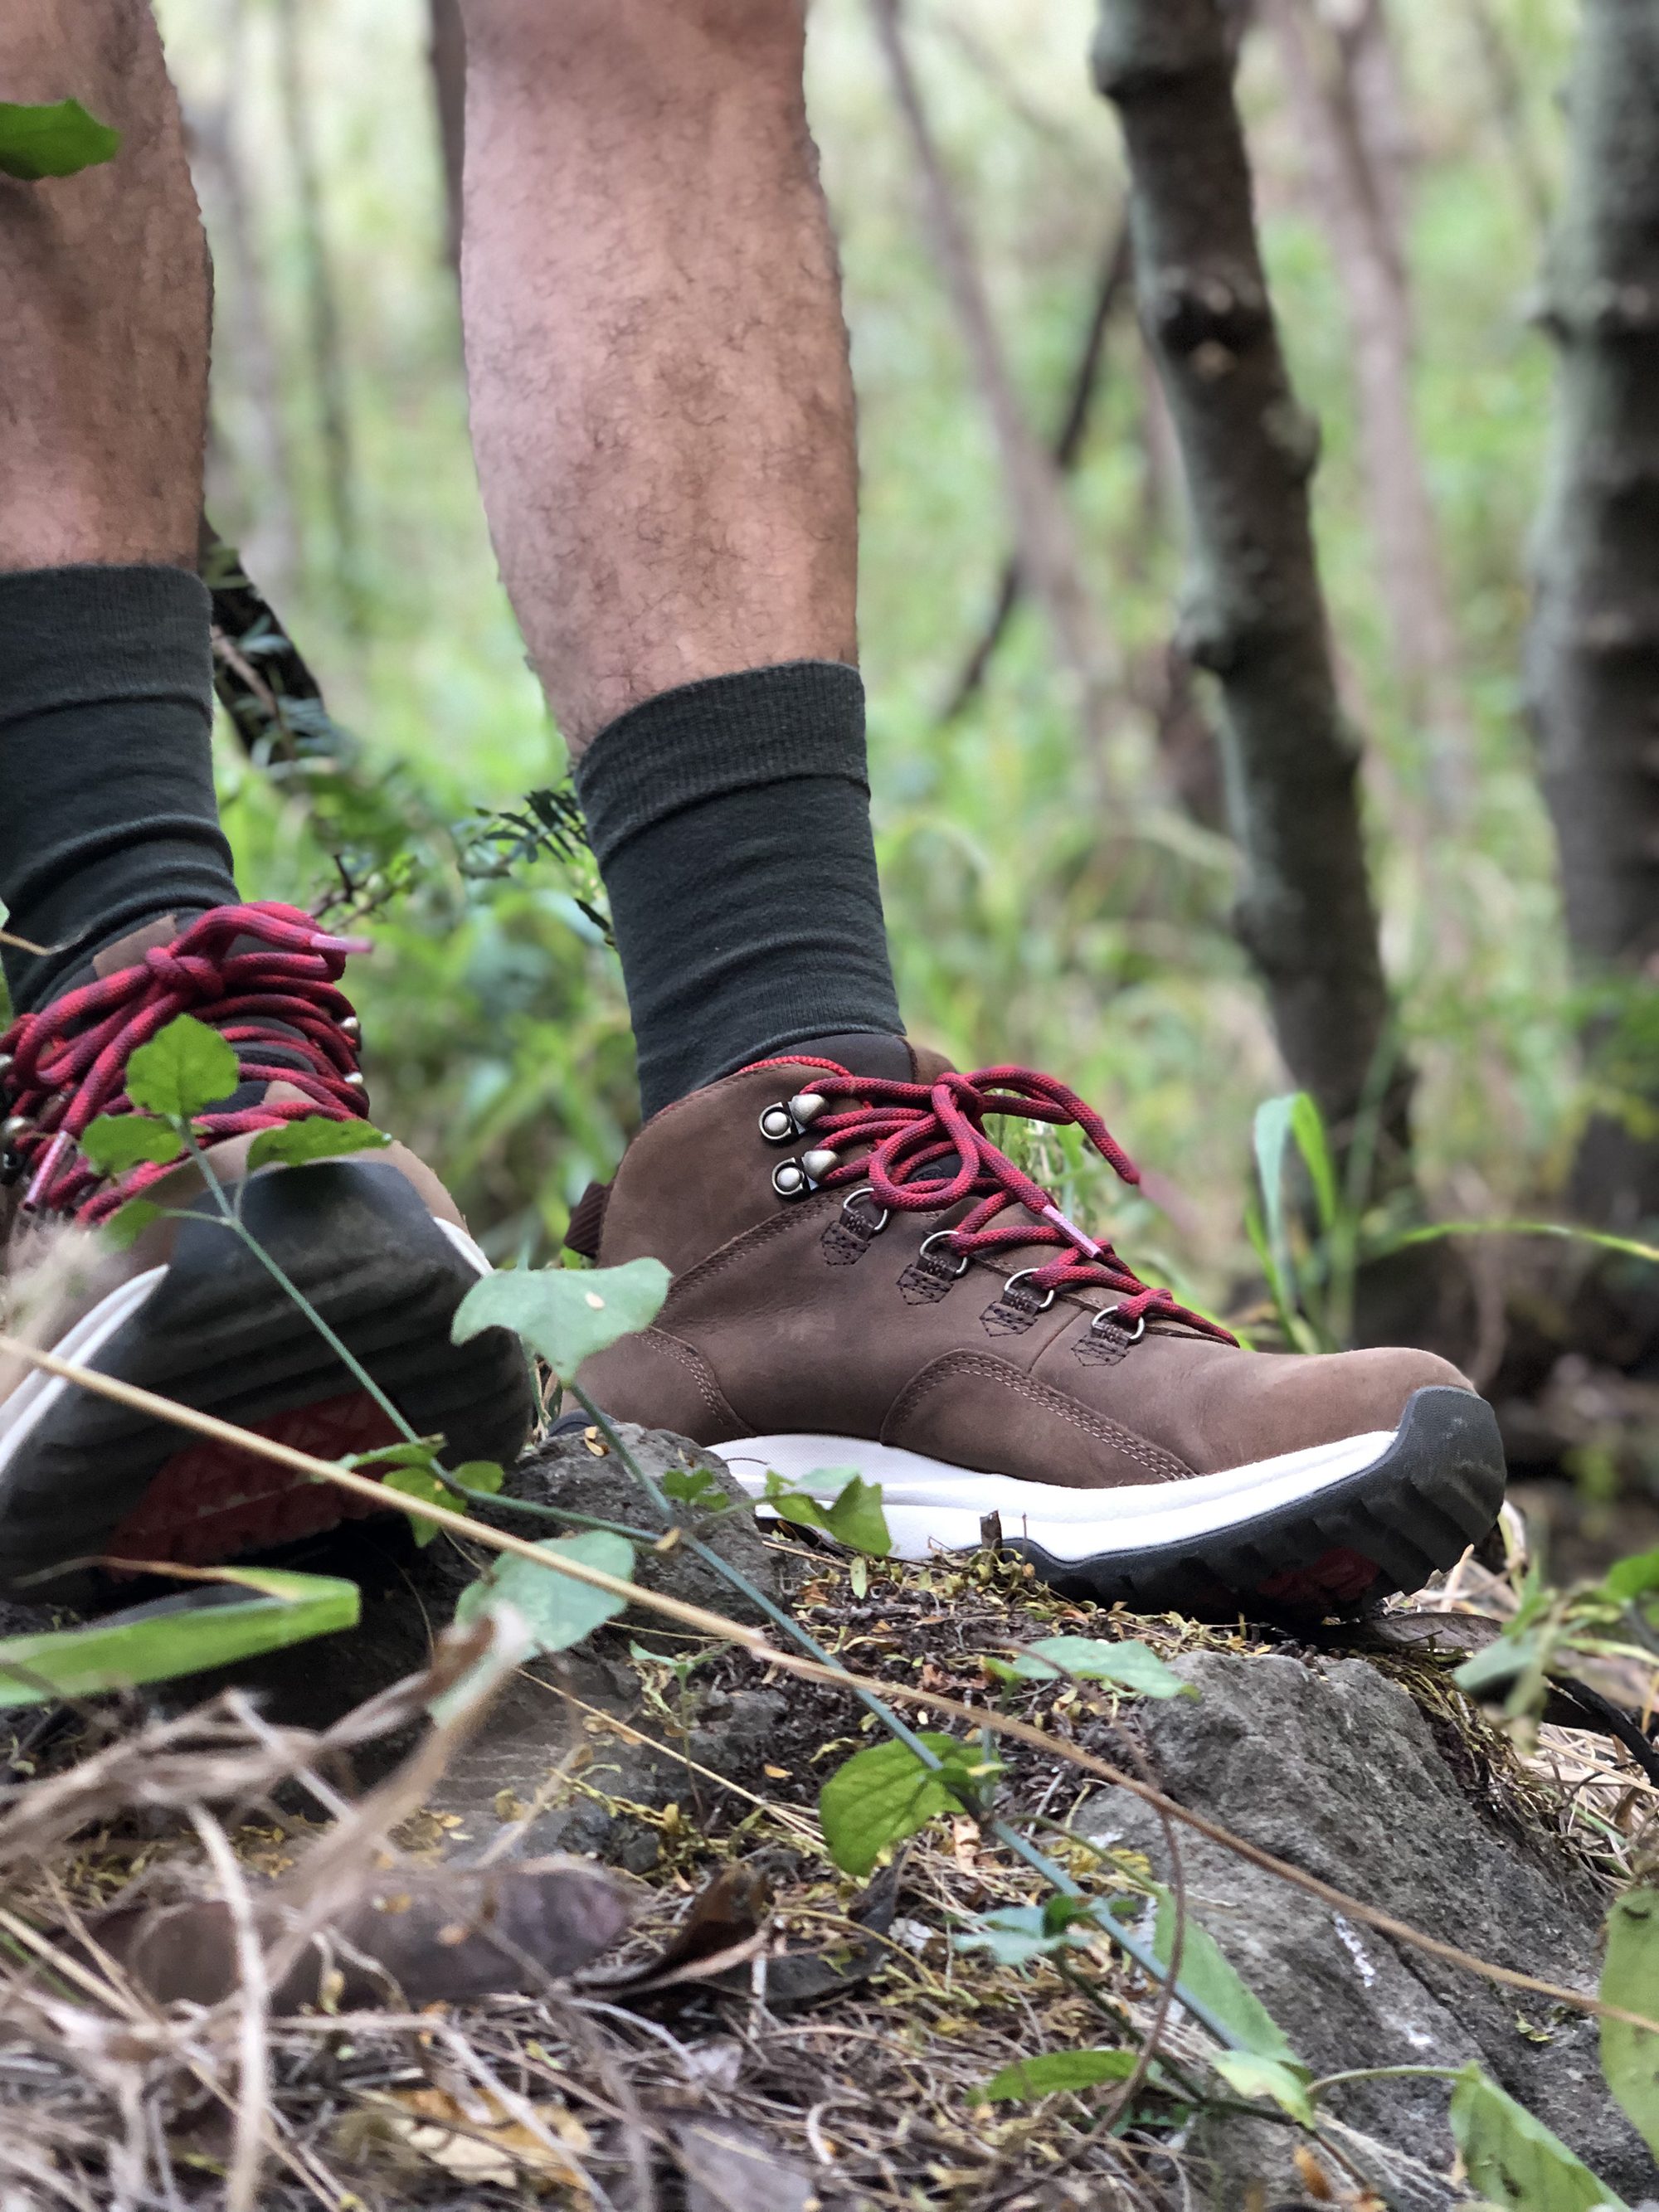 These boots were made for hiking - I always pack a pair of Teva hiking boots anytime I'm traveling to a place with hiking trails. They're waterproof and the traction on them is great. I feel confident hiking in them.